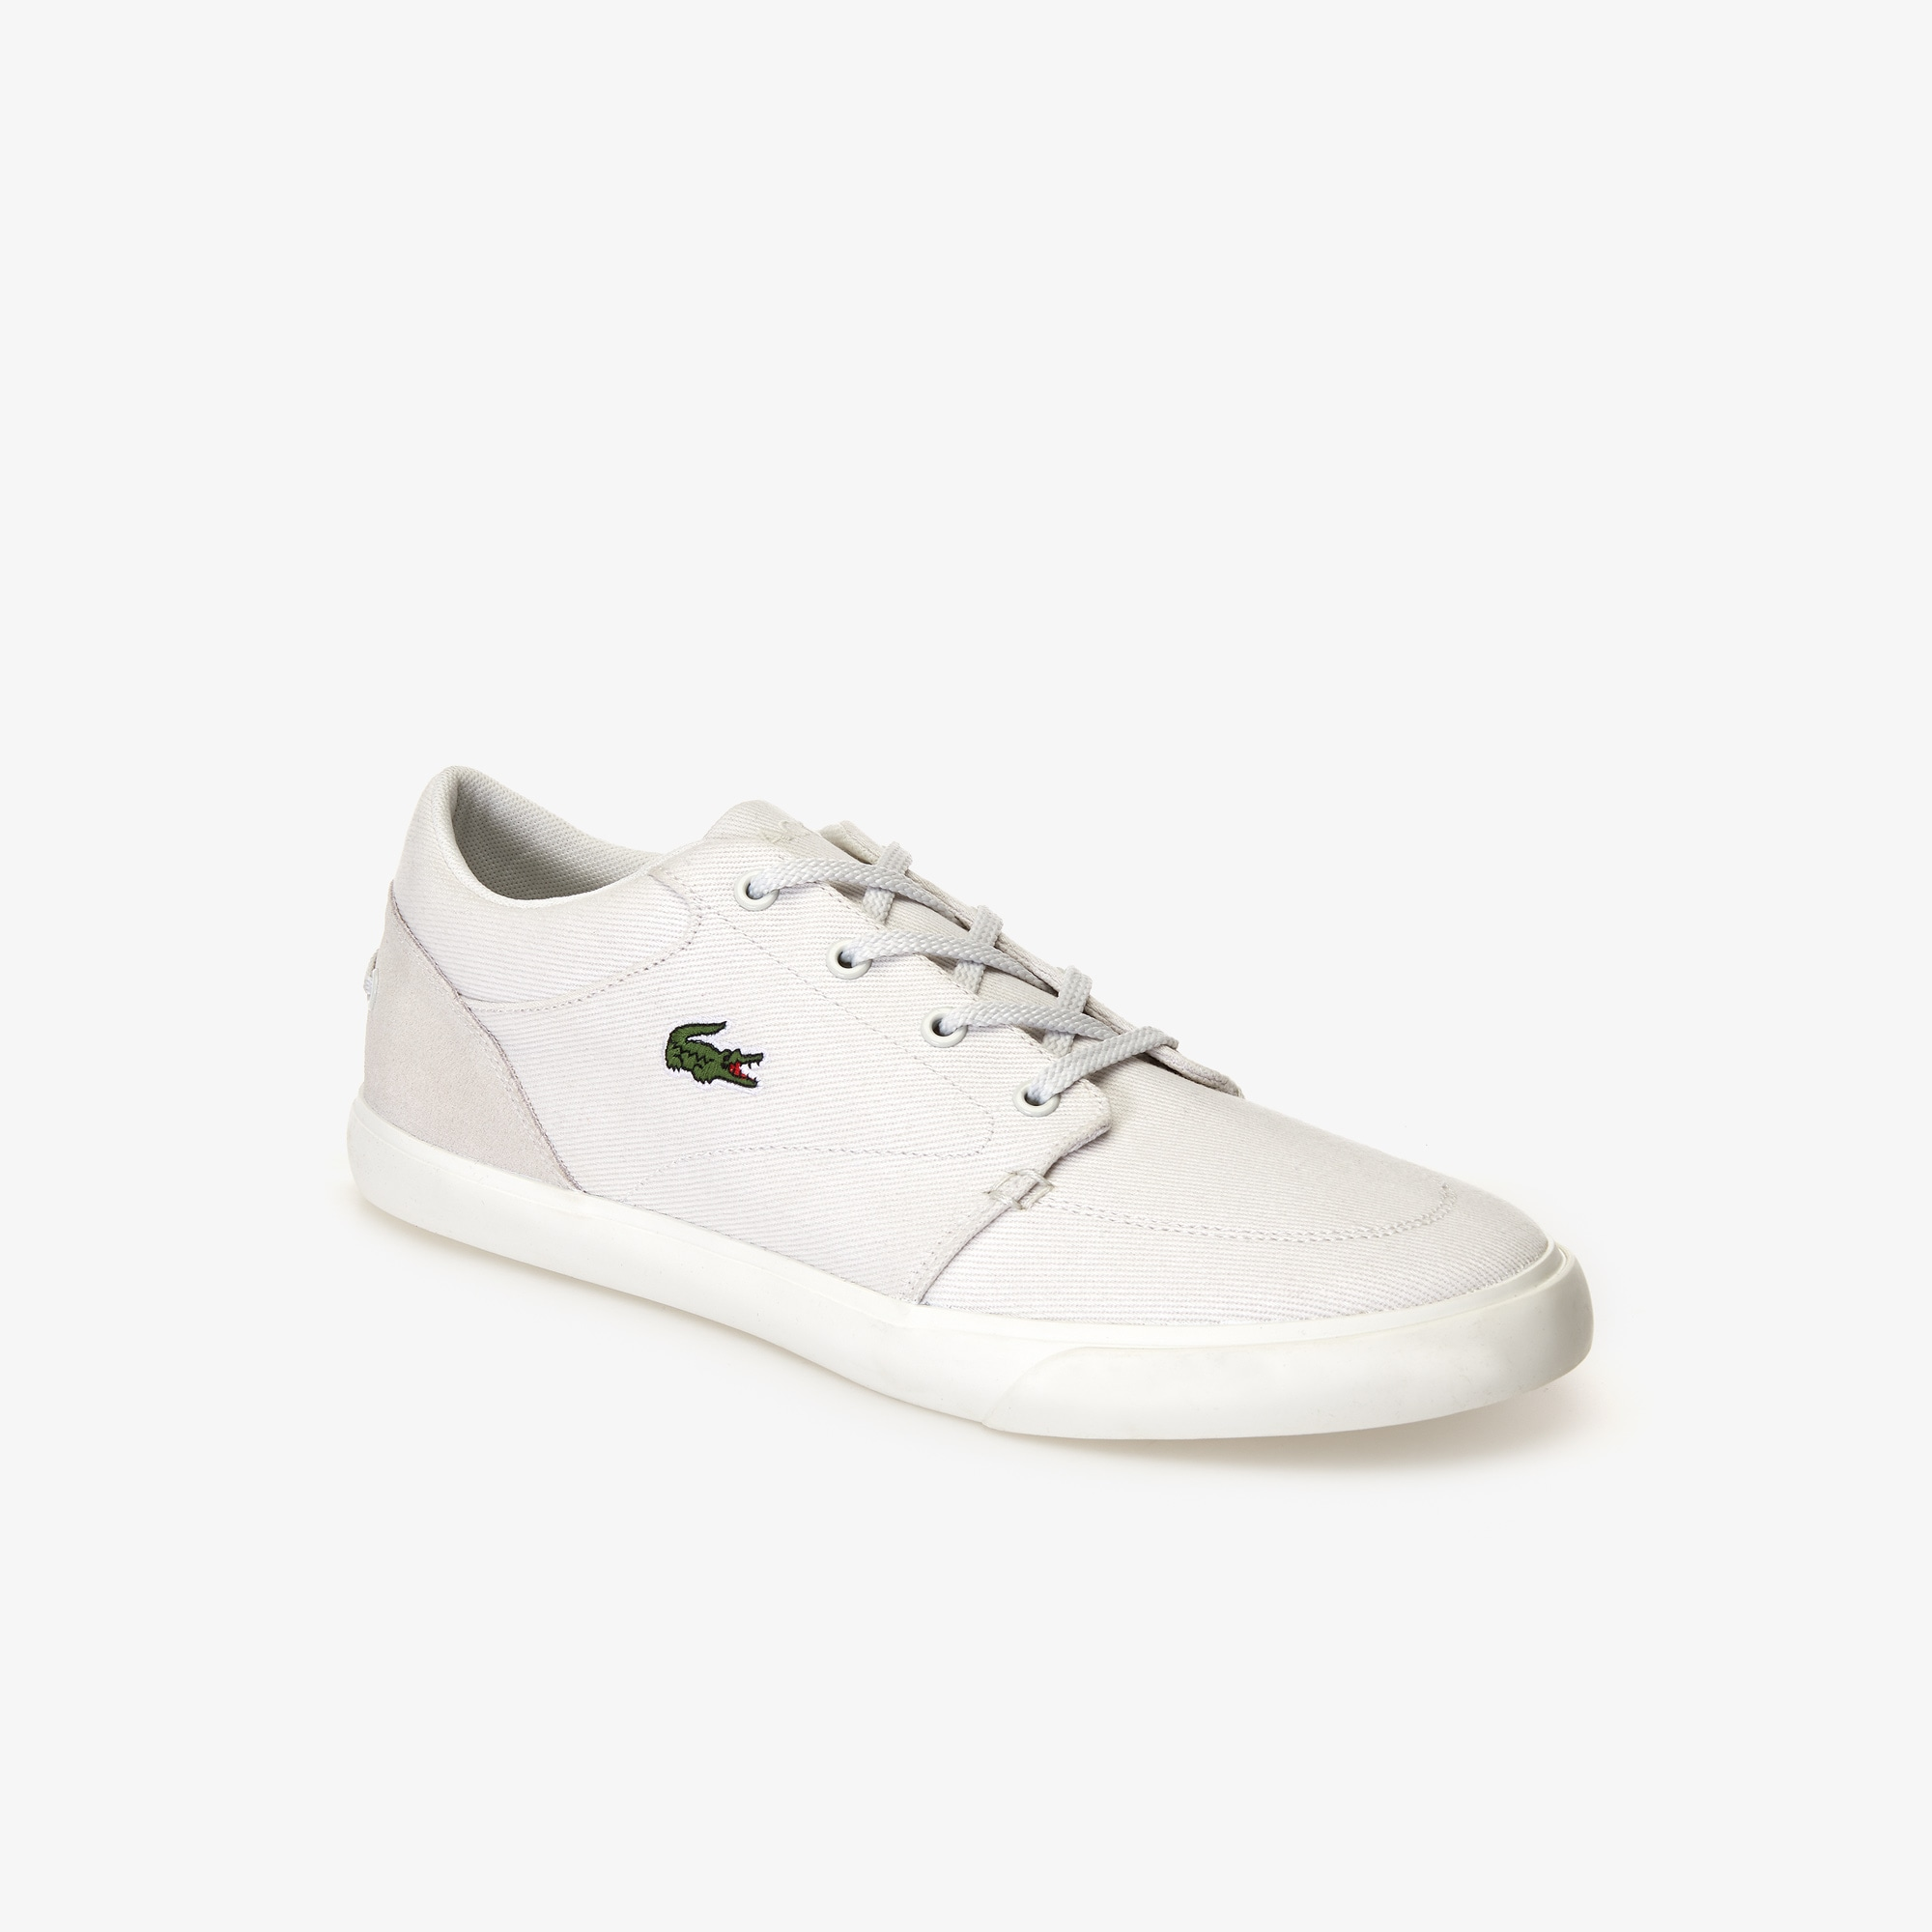 Men's Bayliss Canvas Sneakers